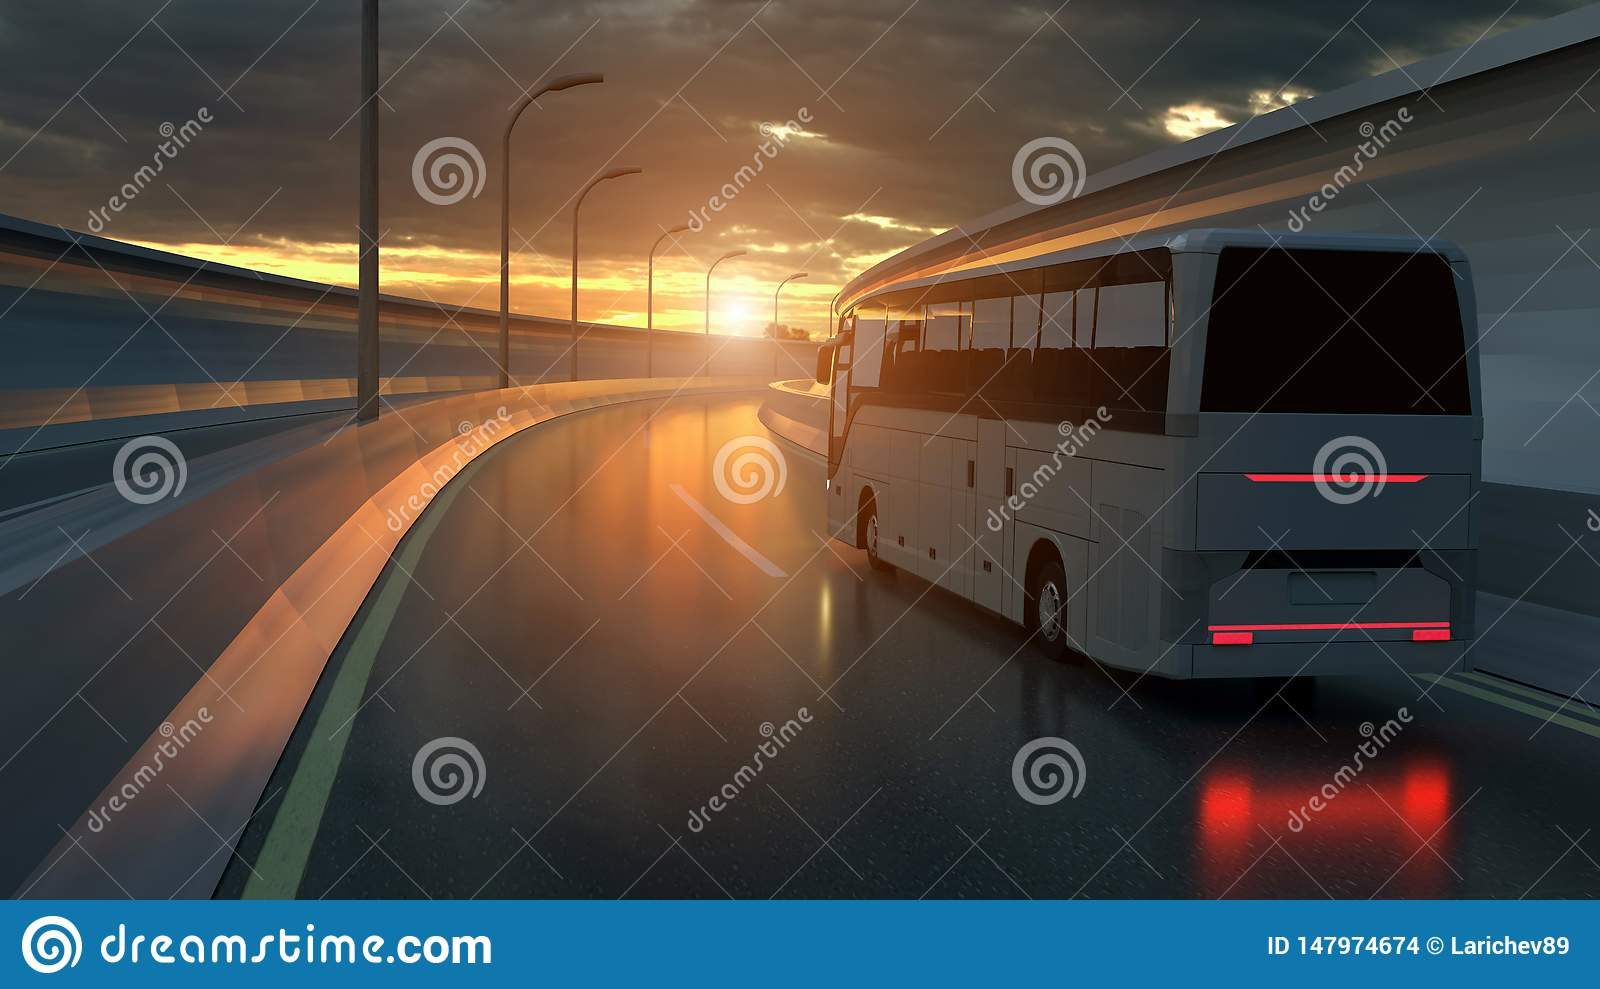 Tourist white bus driving on a highway at sunset backlit by a bright orange sunburst under an ominous cloudy sky. 3d Rendering